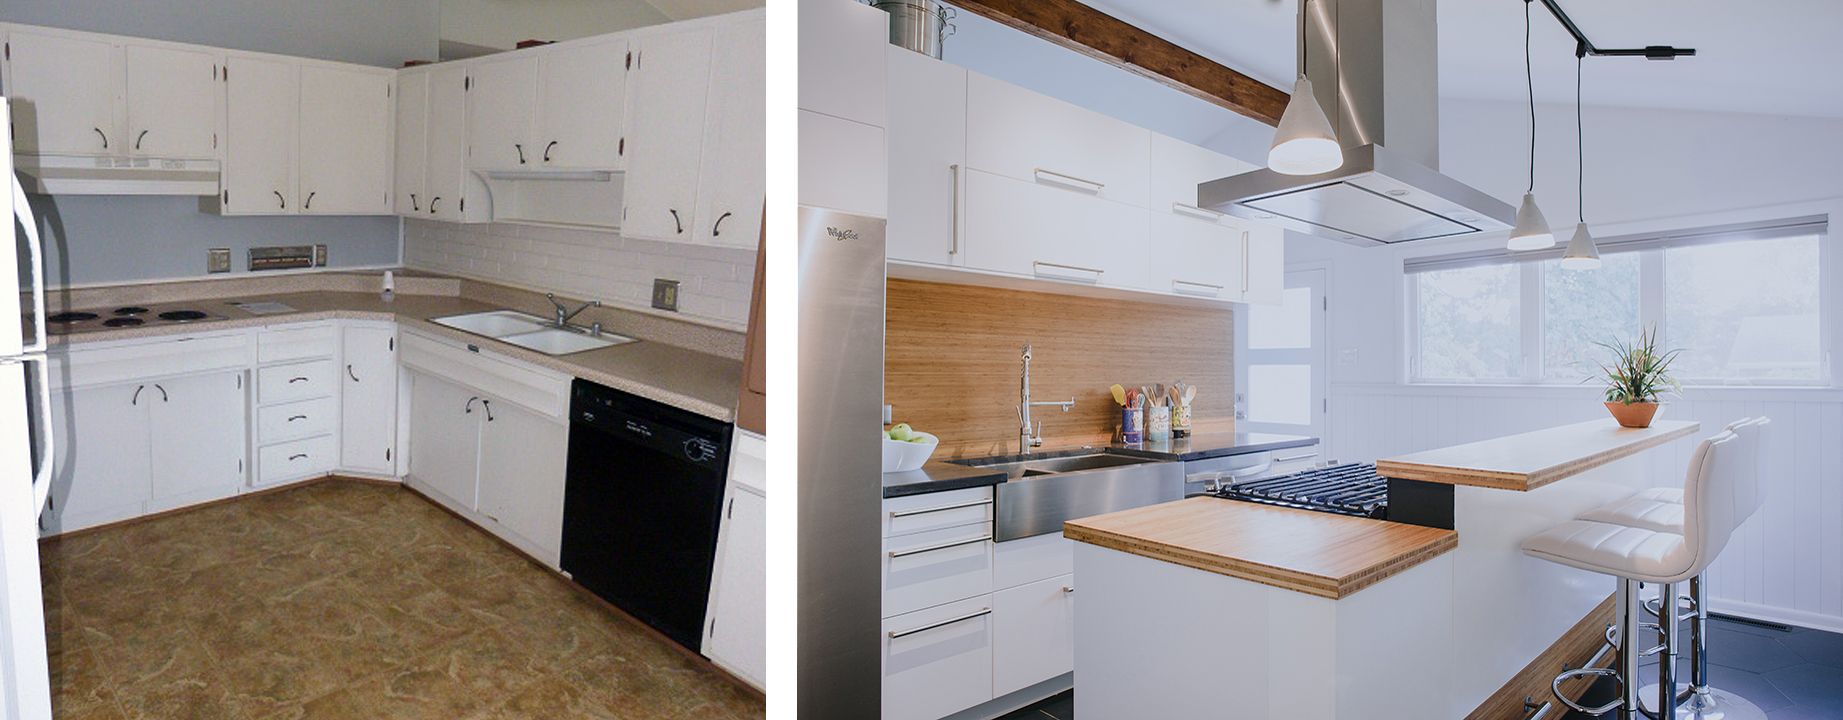 Idle House Modern Kitchen Before and After